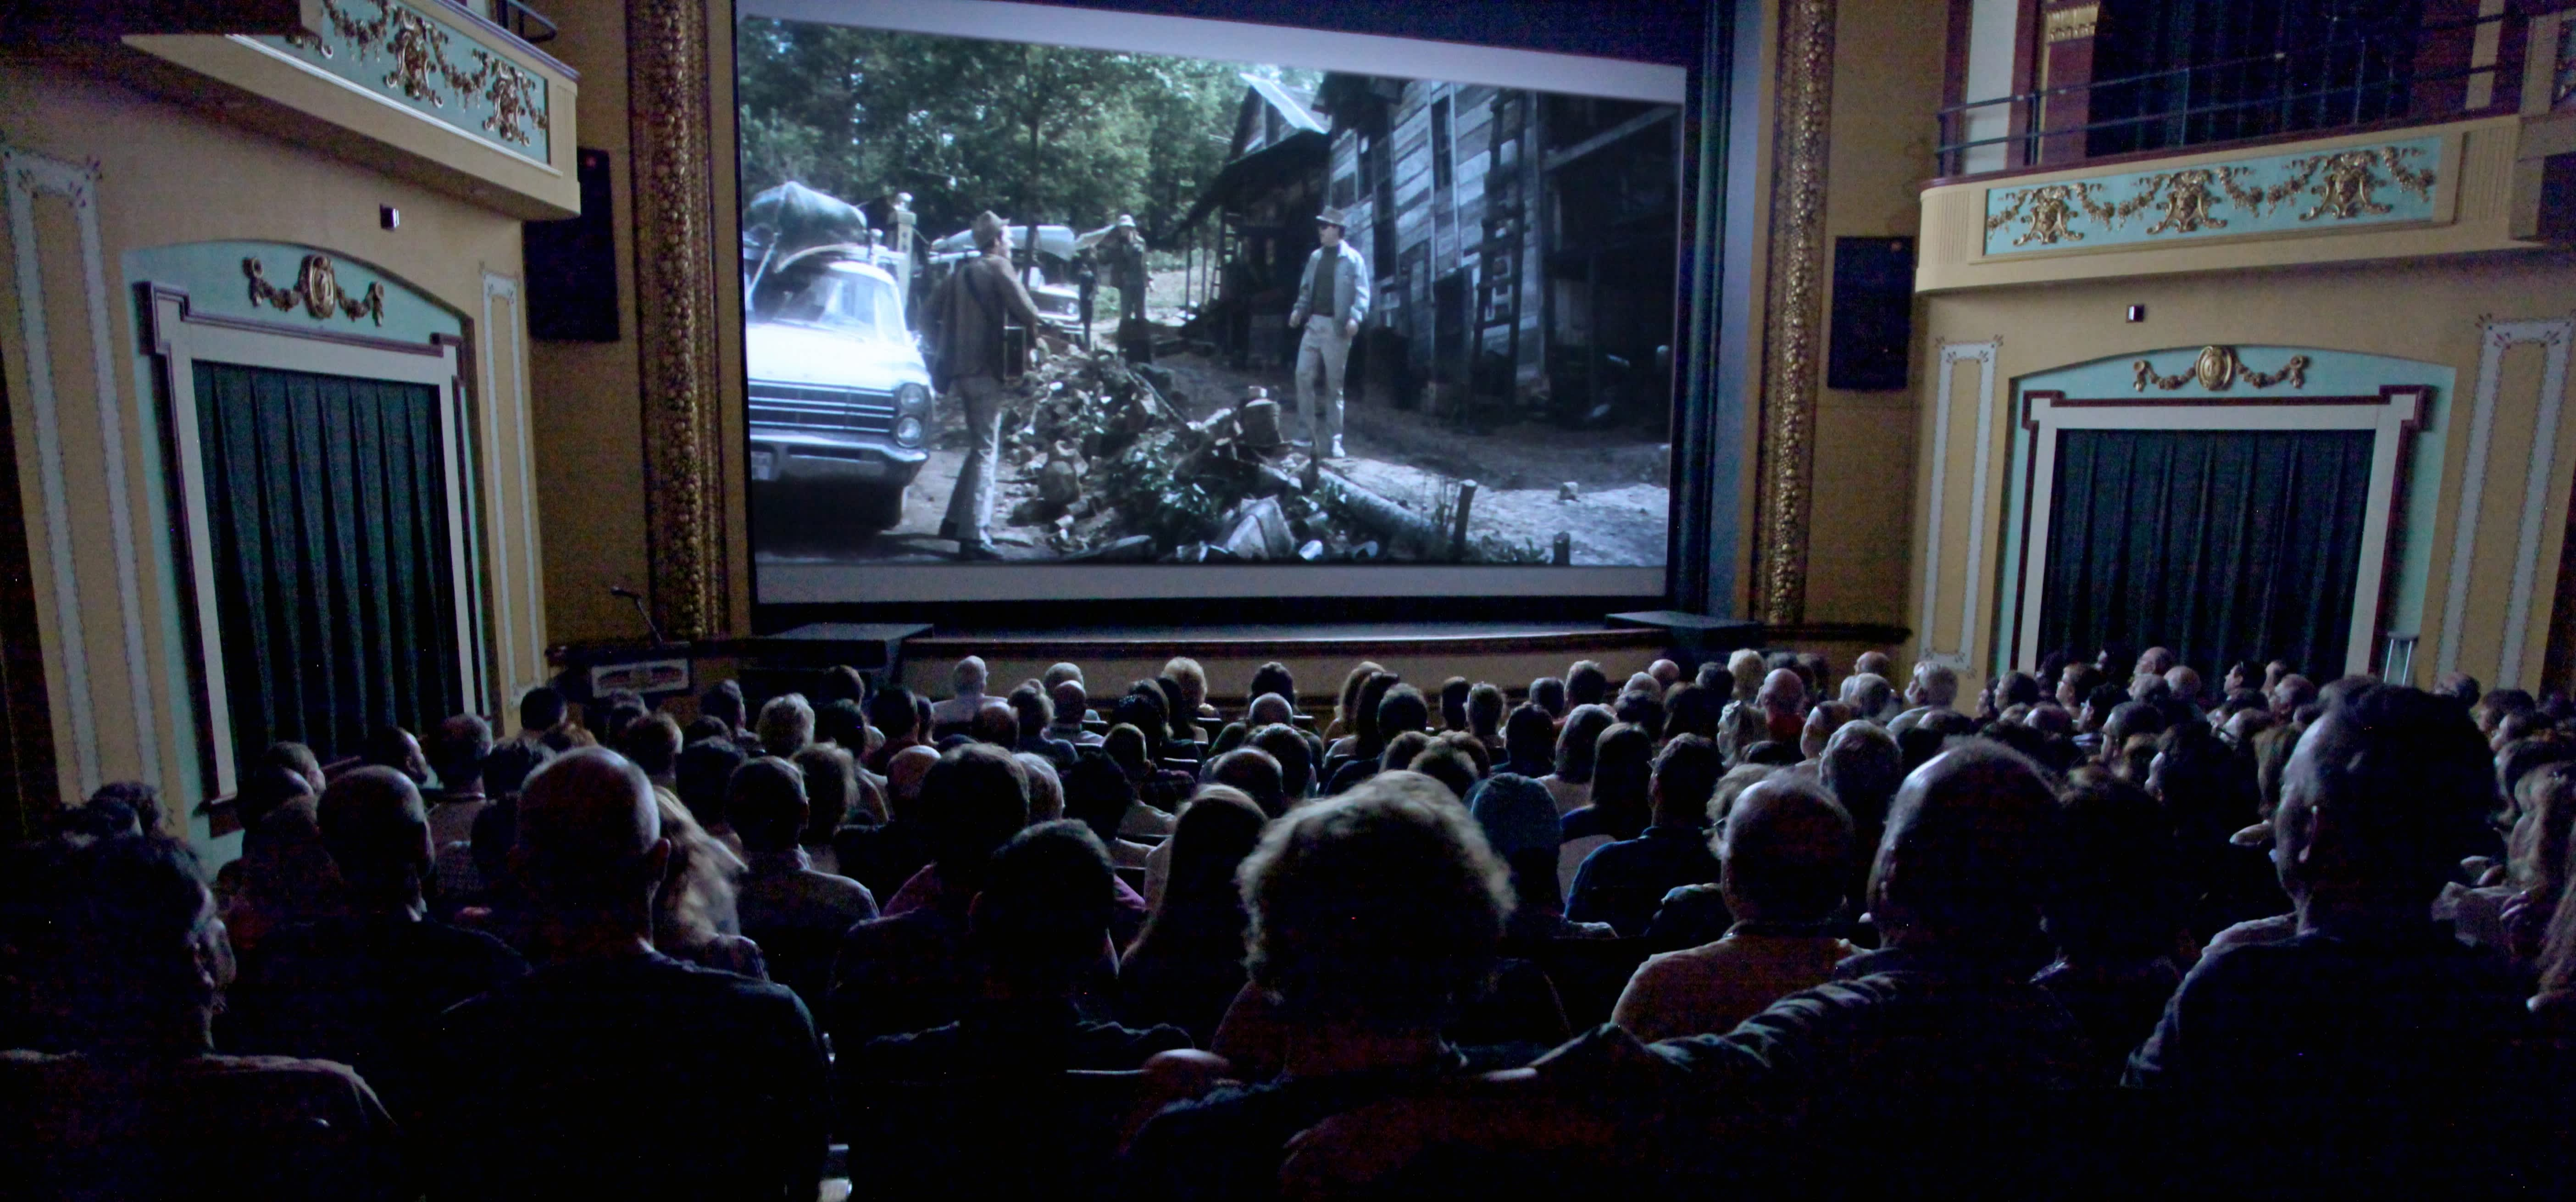 Help Decide What Films are Selected for the 2019 Film Festival